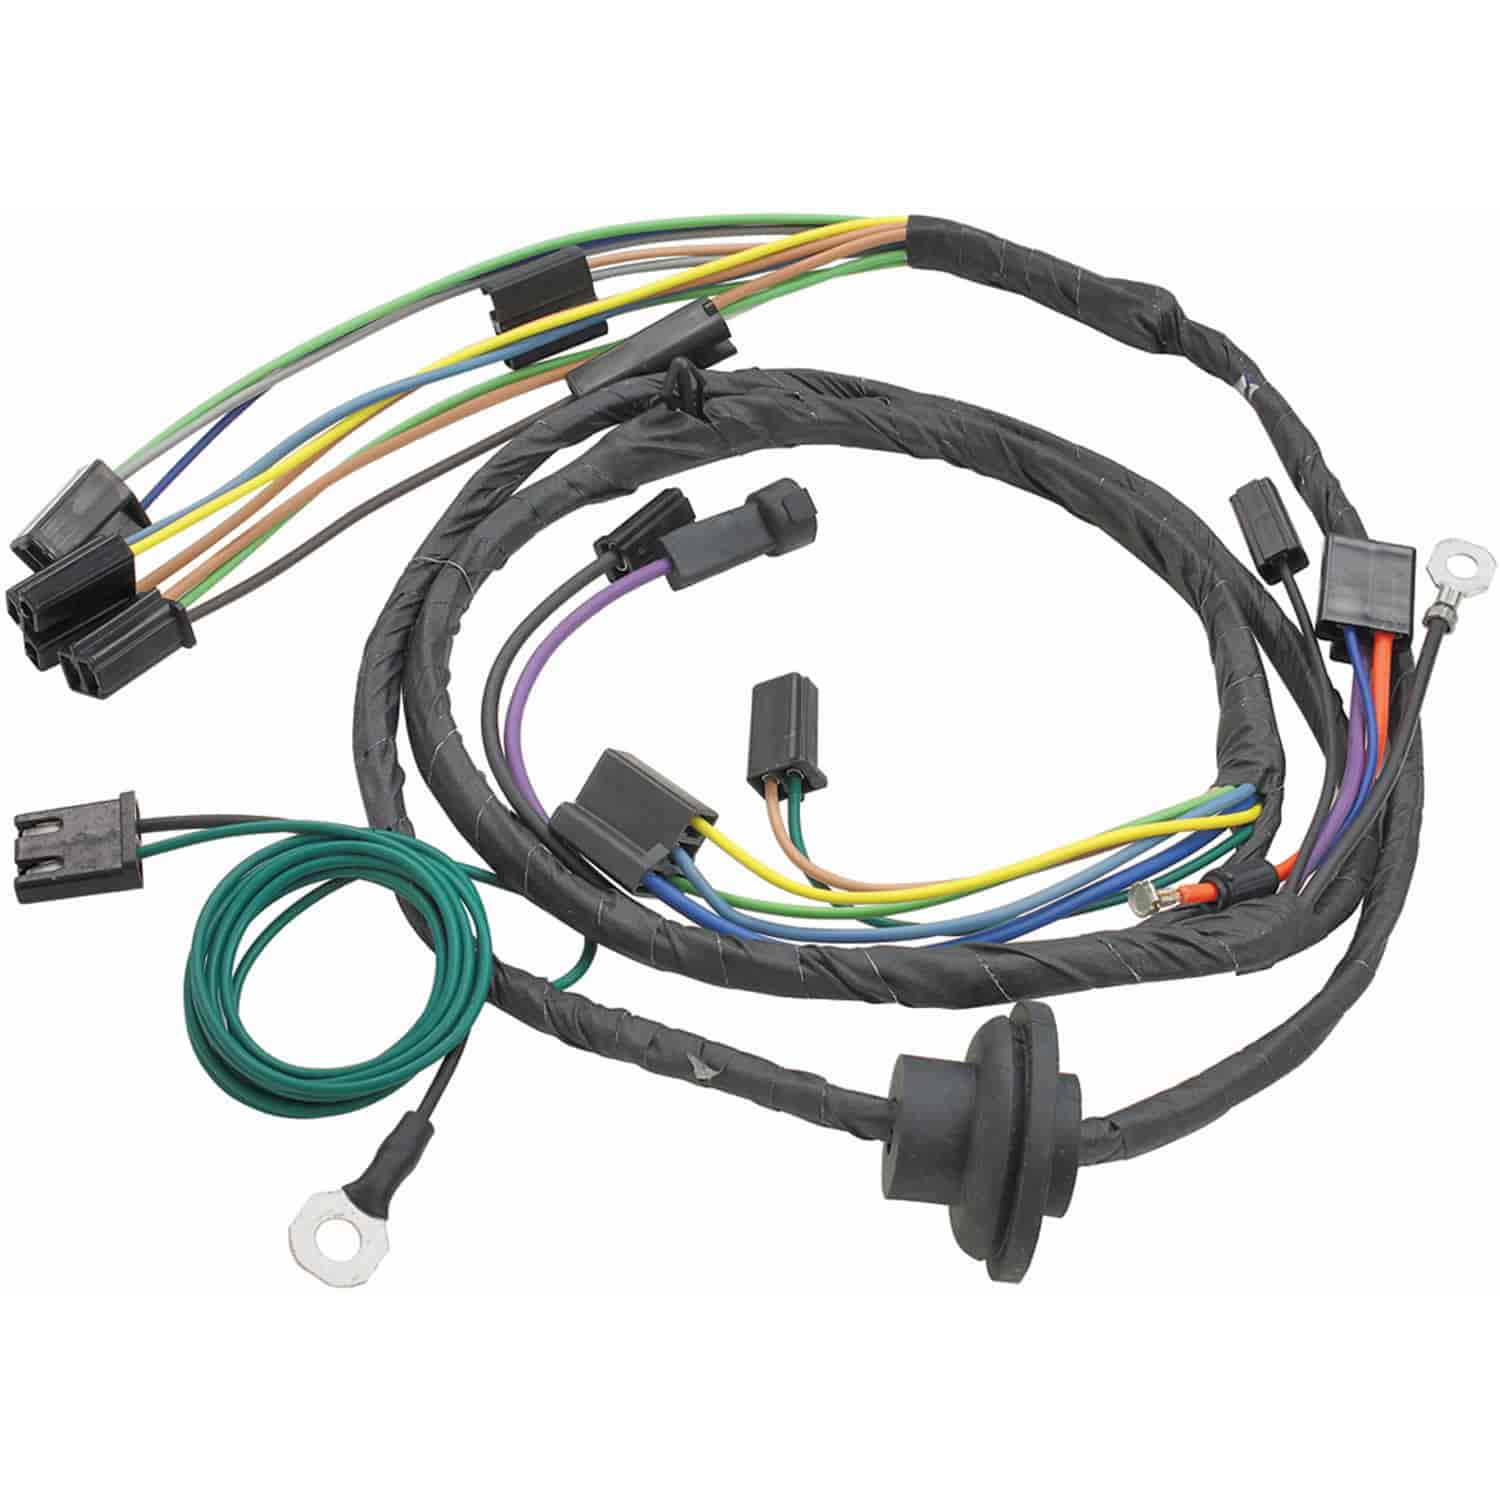 hight resolution of restoparts 14965 wiring harness air conditioning 1970 chevelle el 1970 el camino rear end restoparts wiring